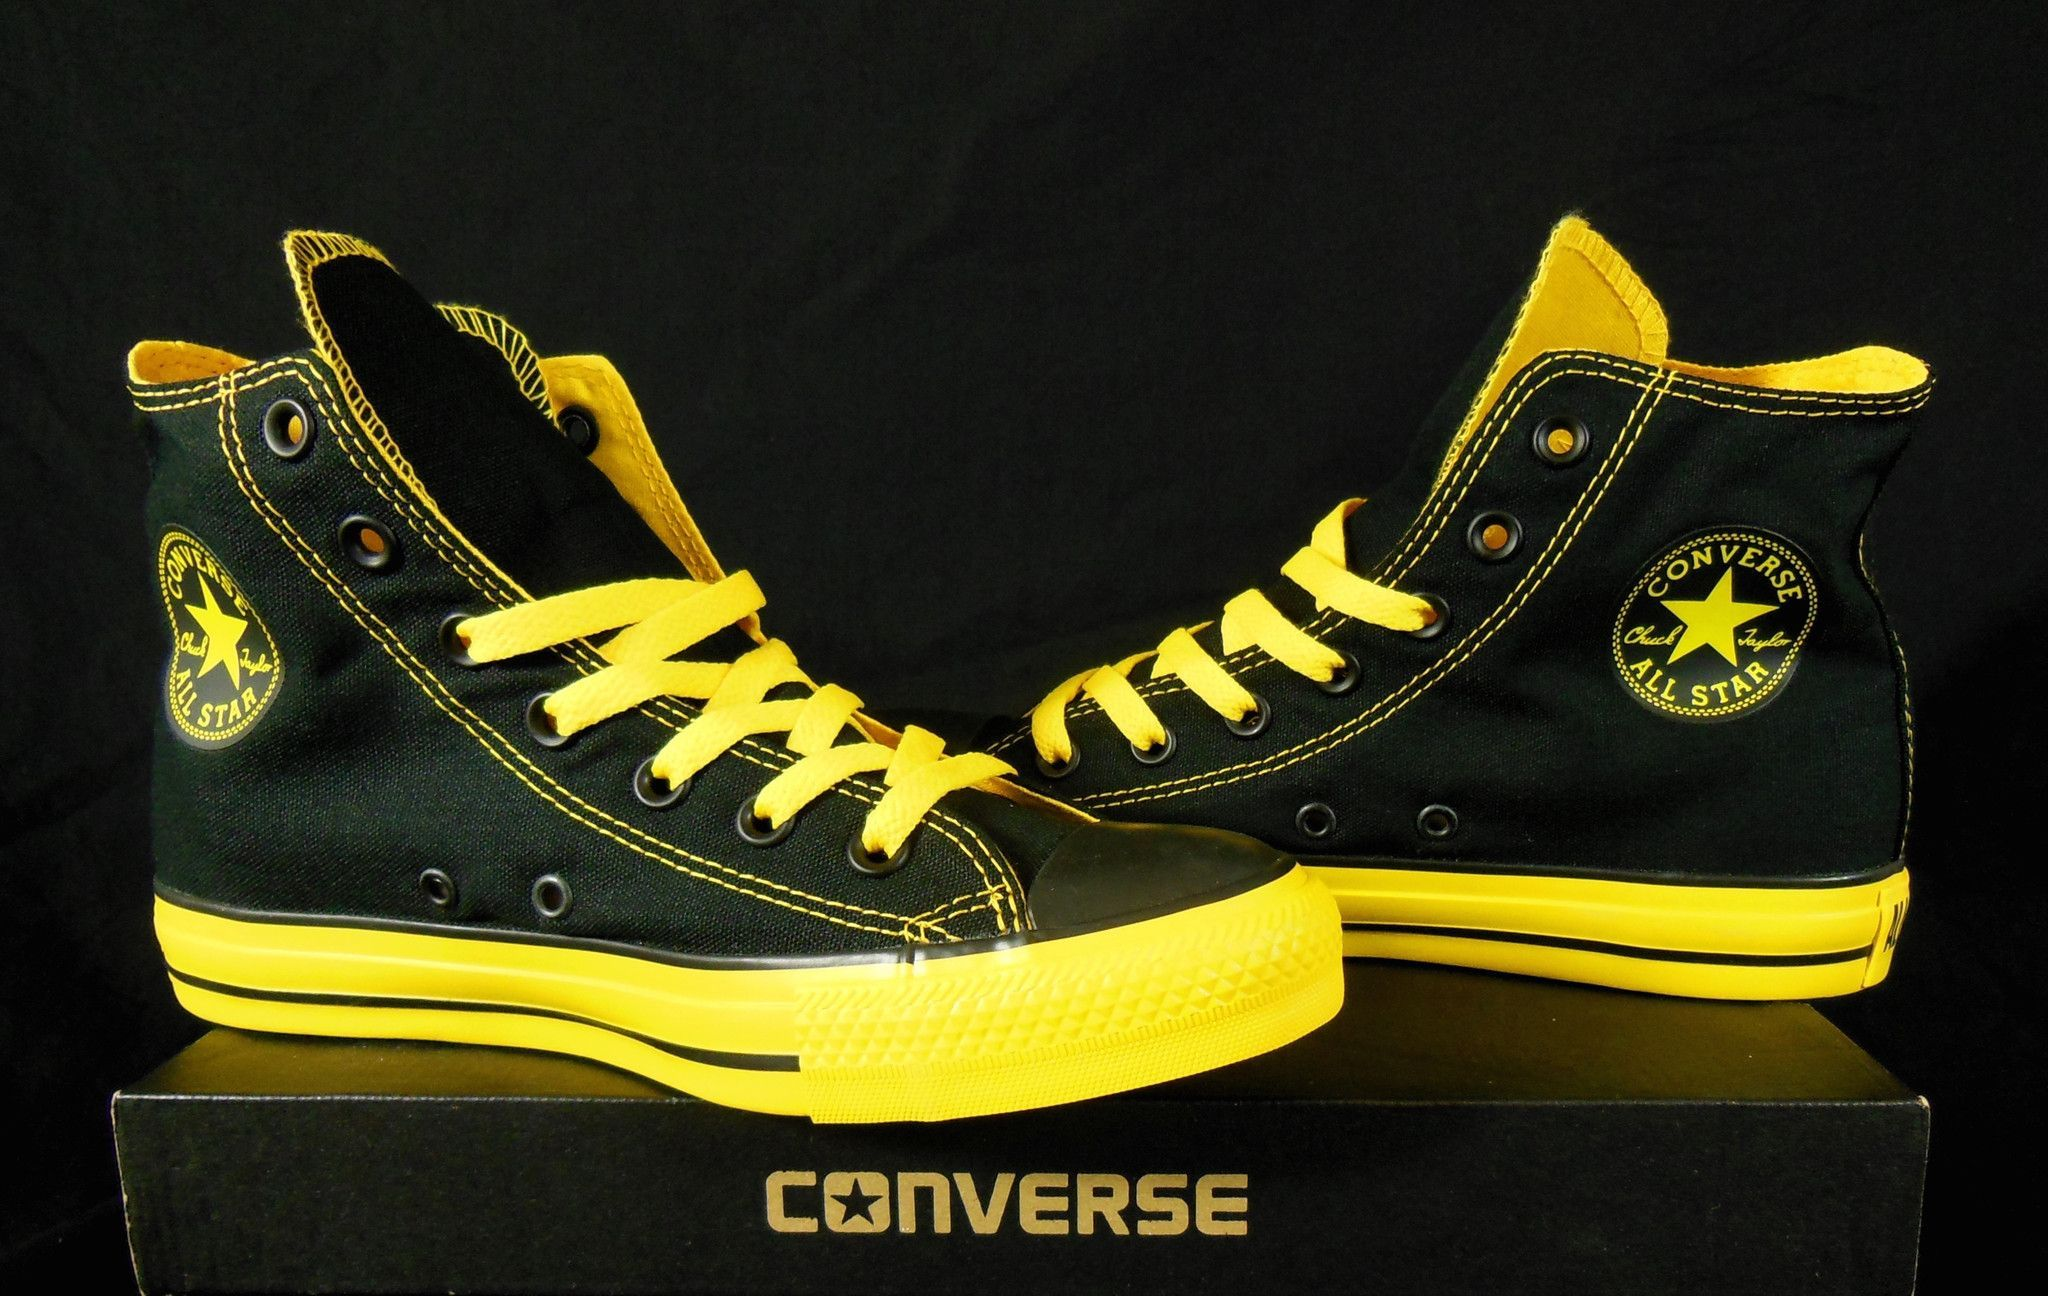 Converse Black & Yellow All Star Chuck Taylor Kicks